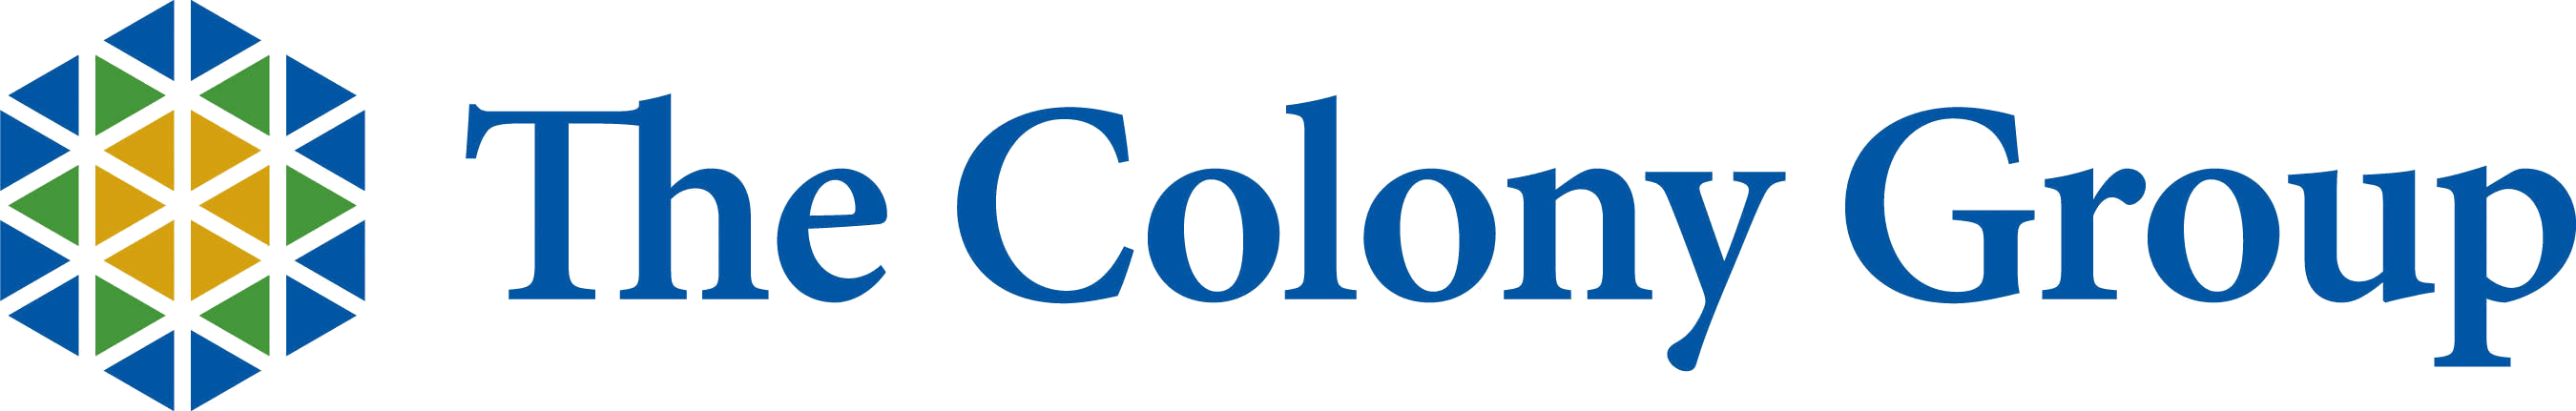 The Colony Group, LLC logo